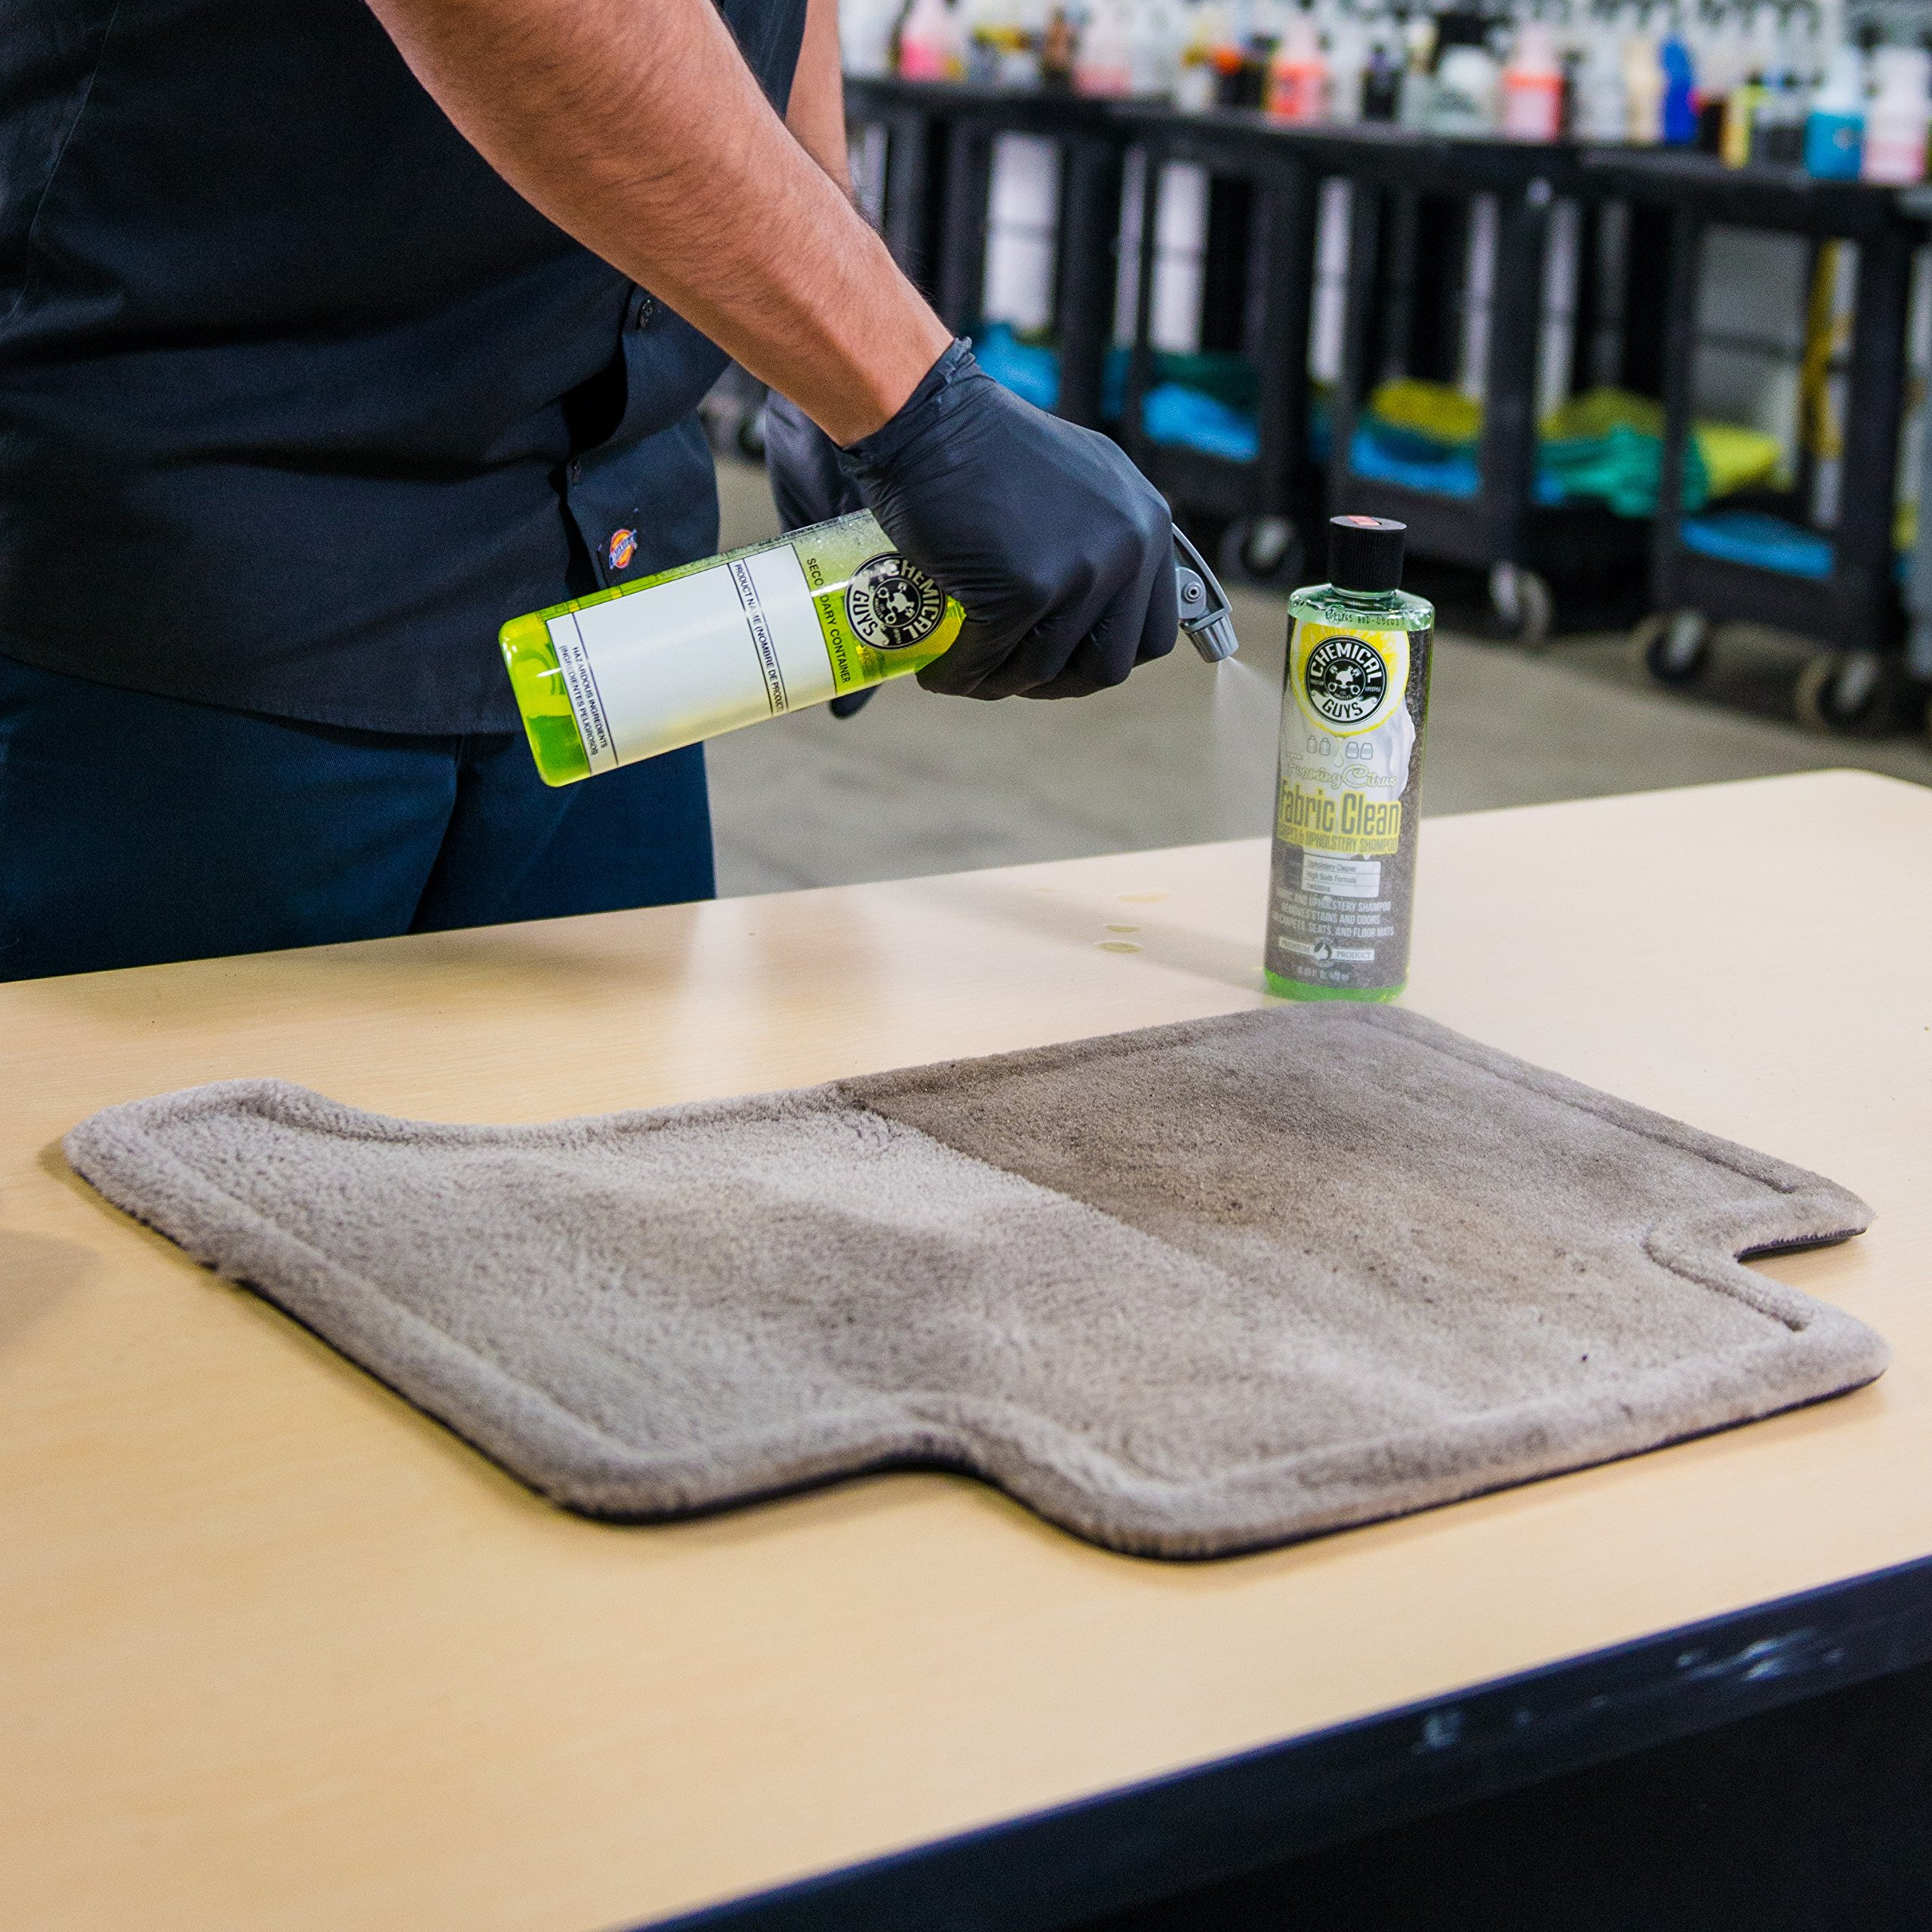 Chemical Guys HOL315 Carpet and Upholstery Cleaning Kit (3 Items), 16. Fluid_Ounces by Chemical Guys (Image #5)